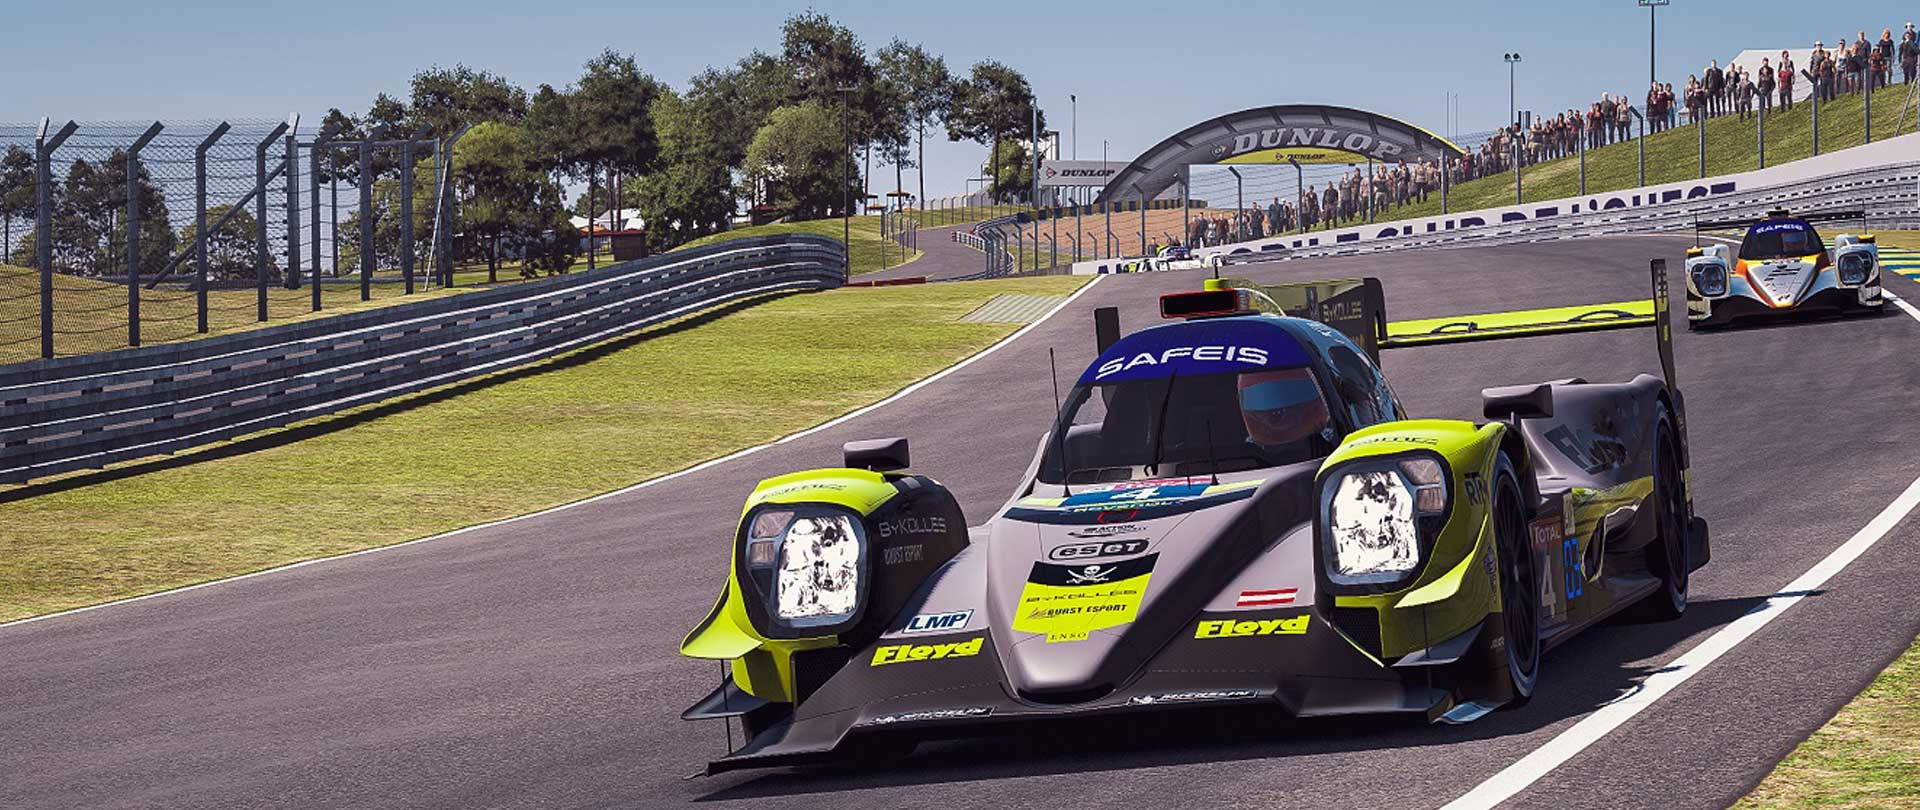 ByKolles 24h Le Mans Virtual